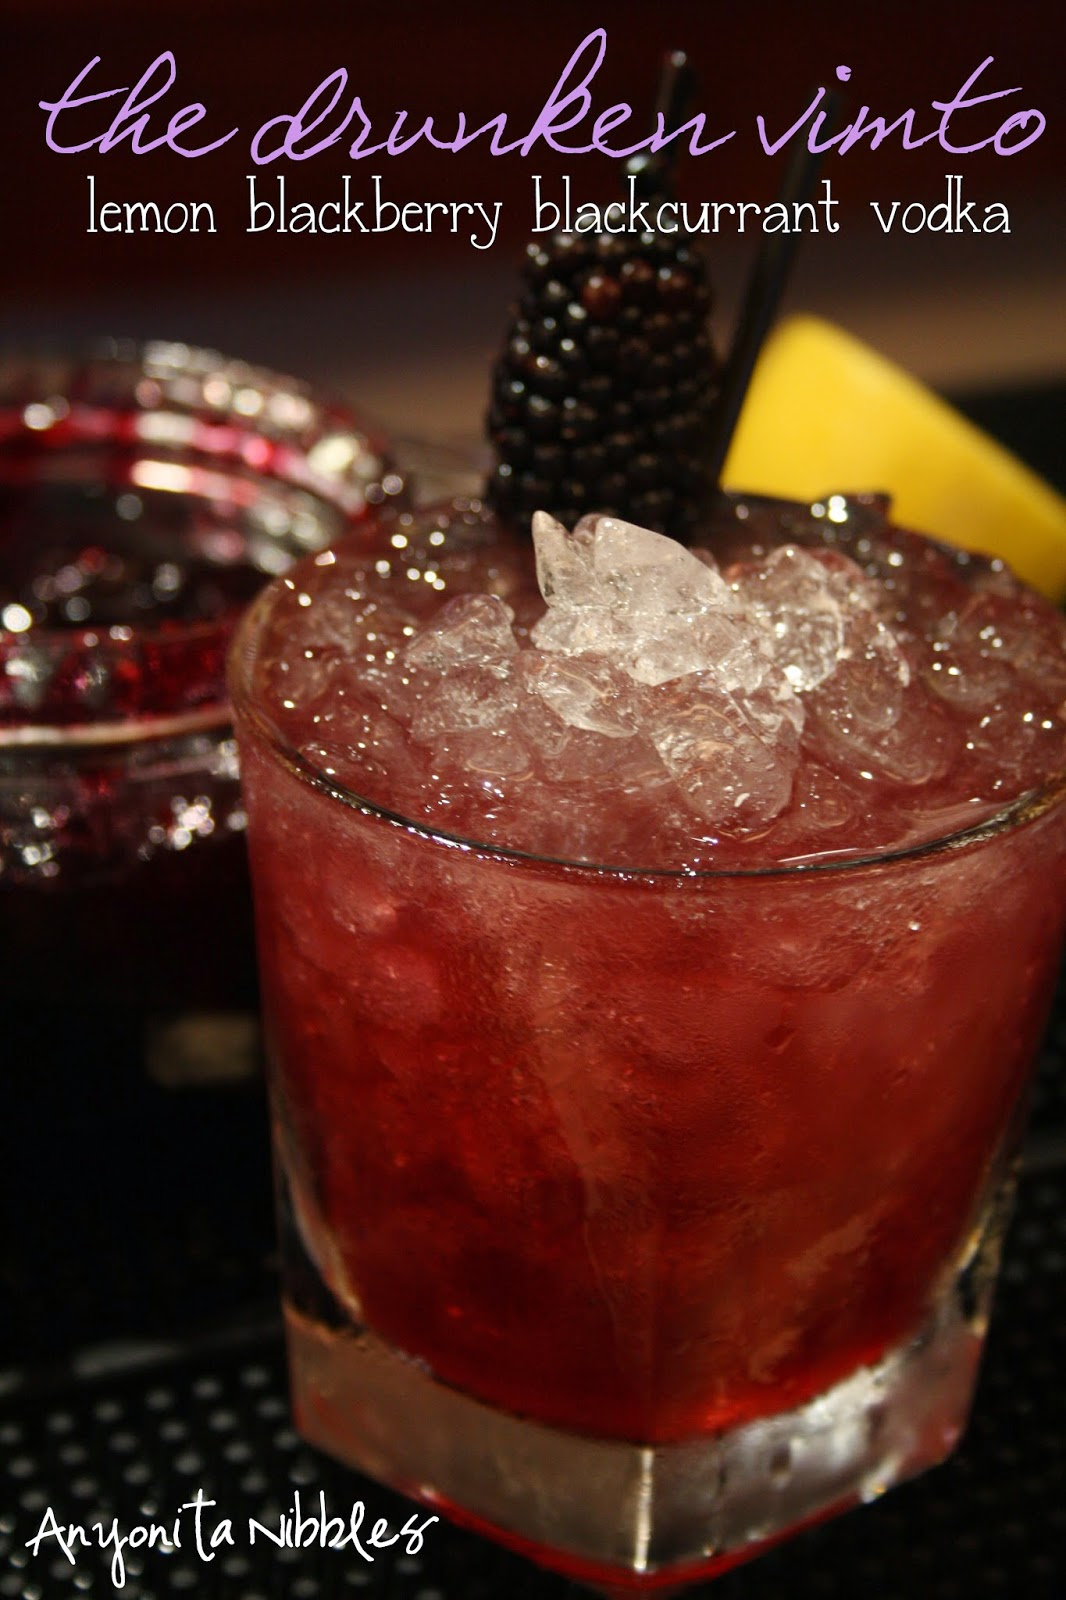 Lemon, blackberry, blackcurrant, honey and vodka come together to form this sassy drink. From Anyonita Nibbles